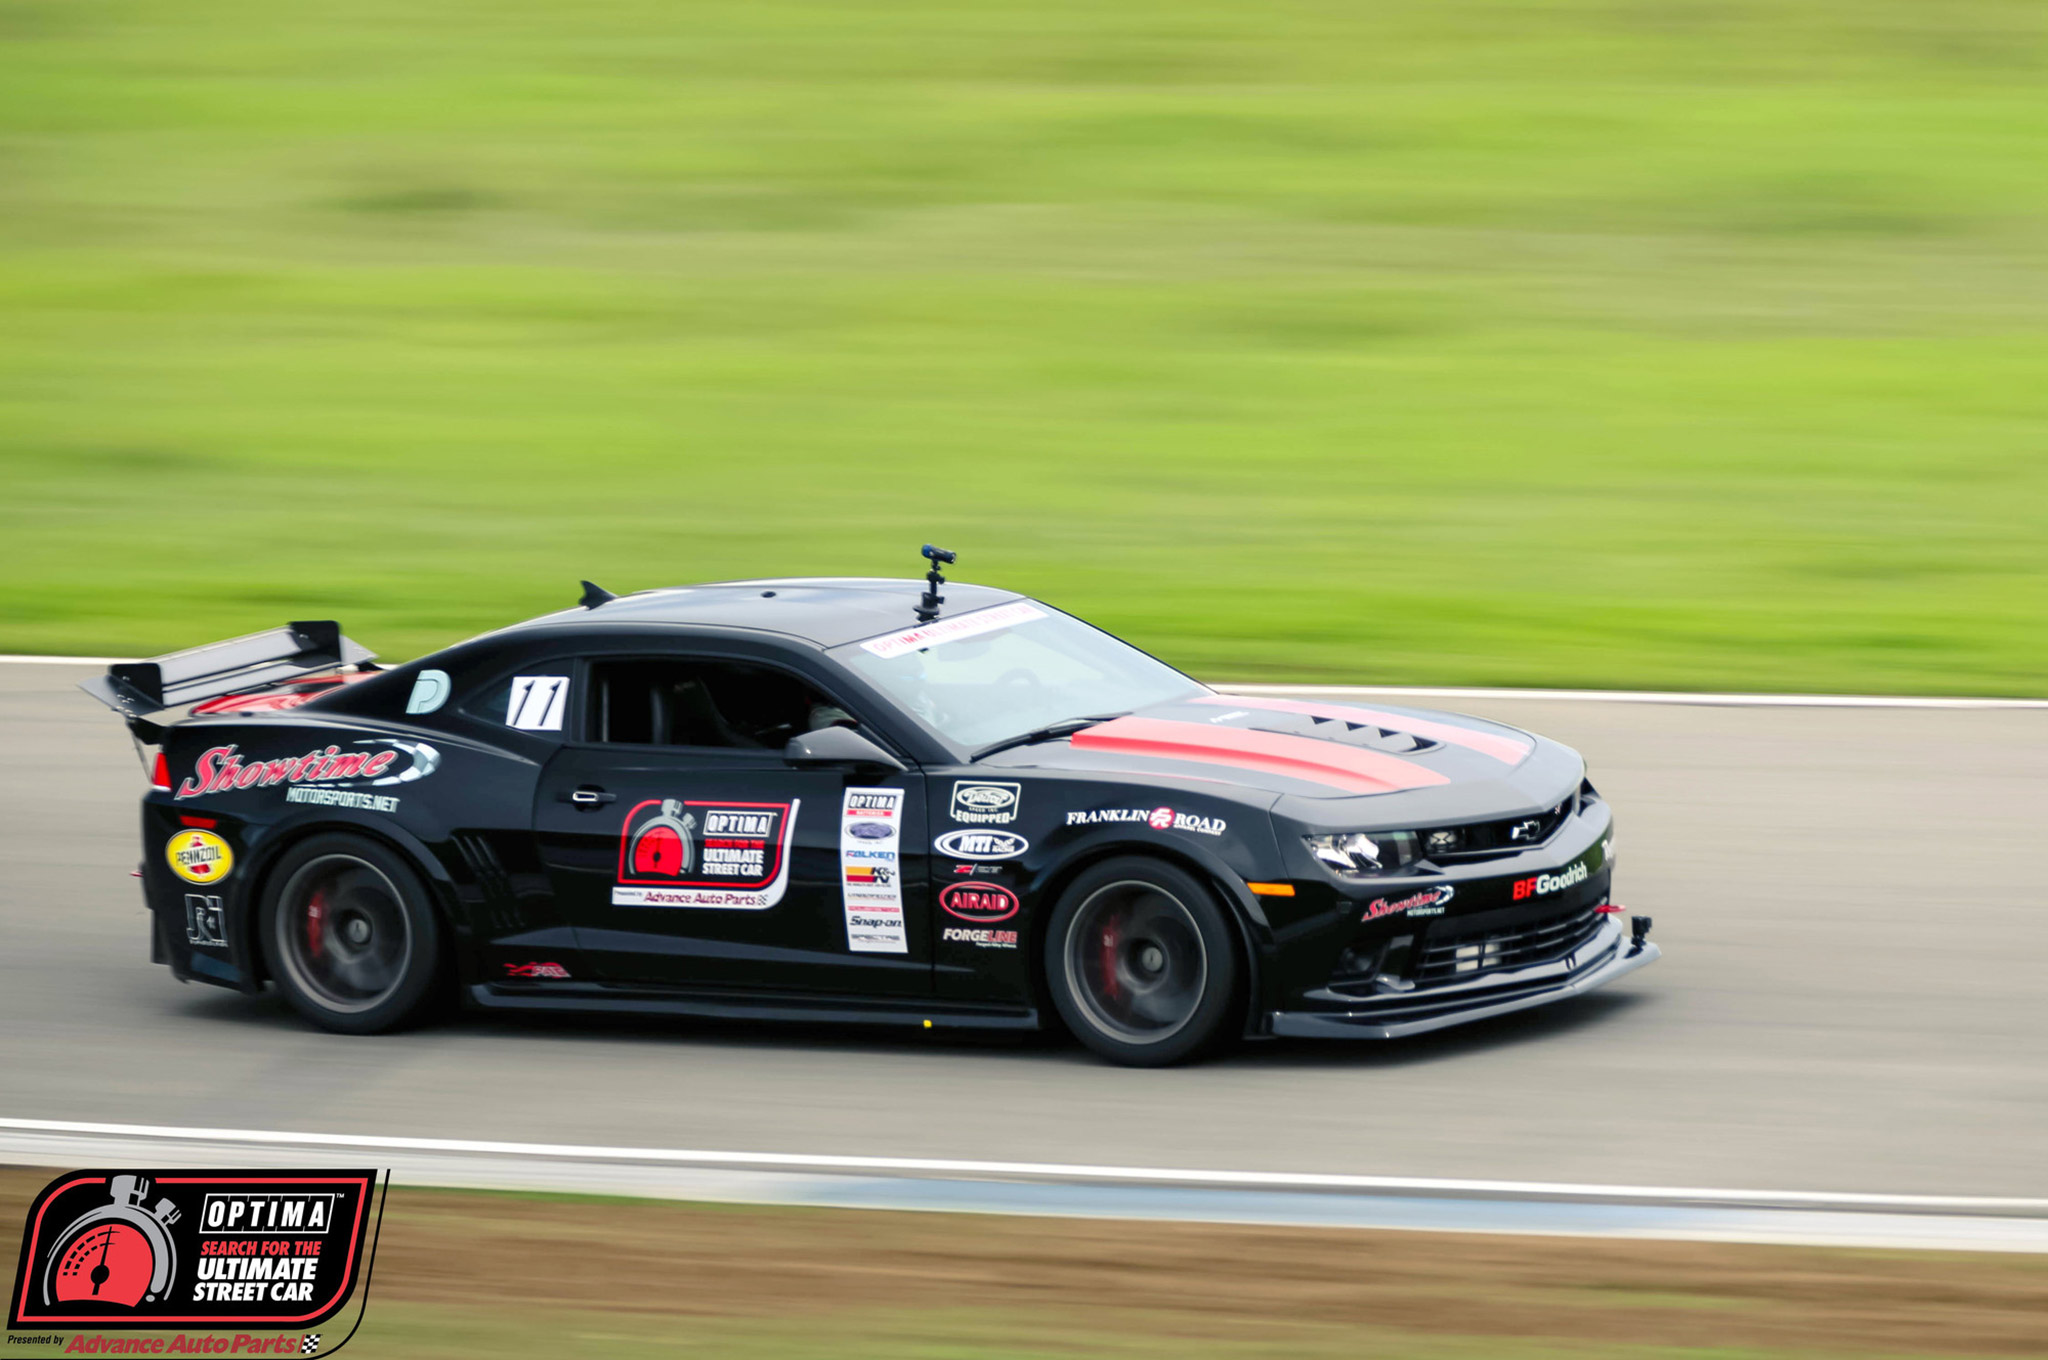 Ken Thwaits has now qualified a fifth-gen Camaro in each of the last three seasons. His Showtime Motorsports crew overcame some mechanical gremlins and stiff competiton from both of Jordan Priestley's Camaros to bring home the victory.